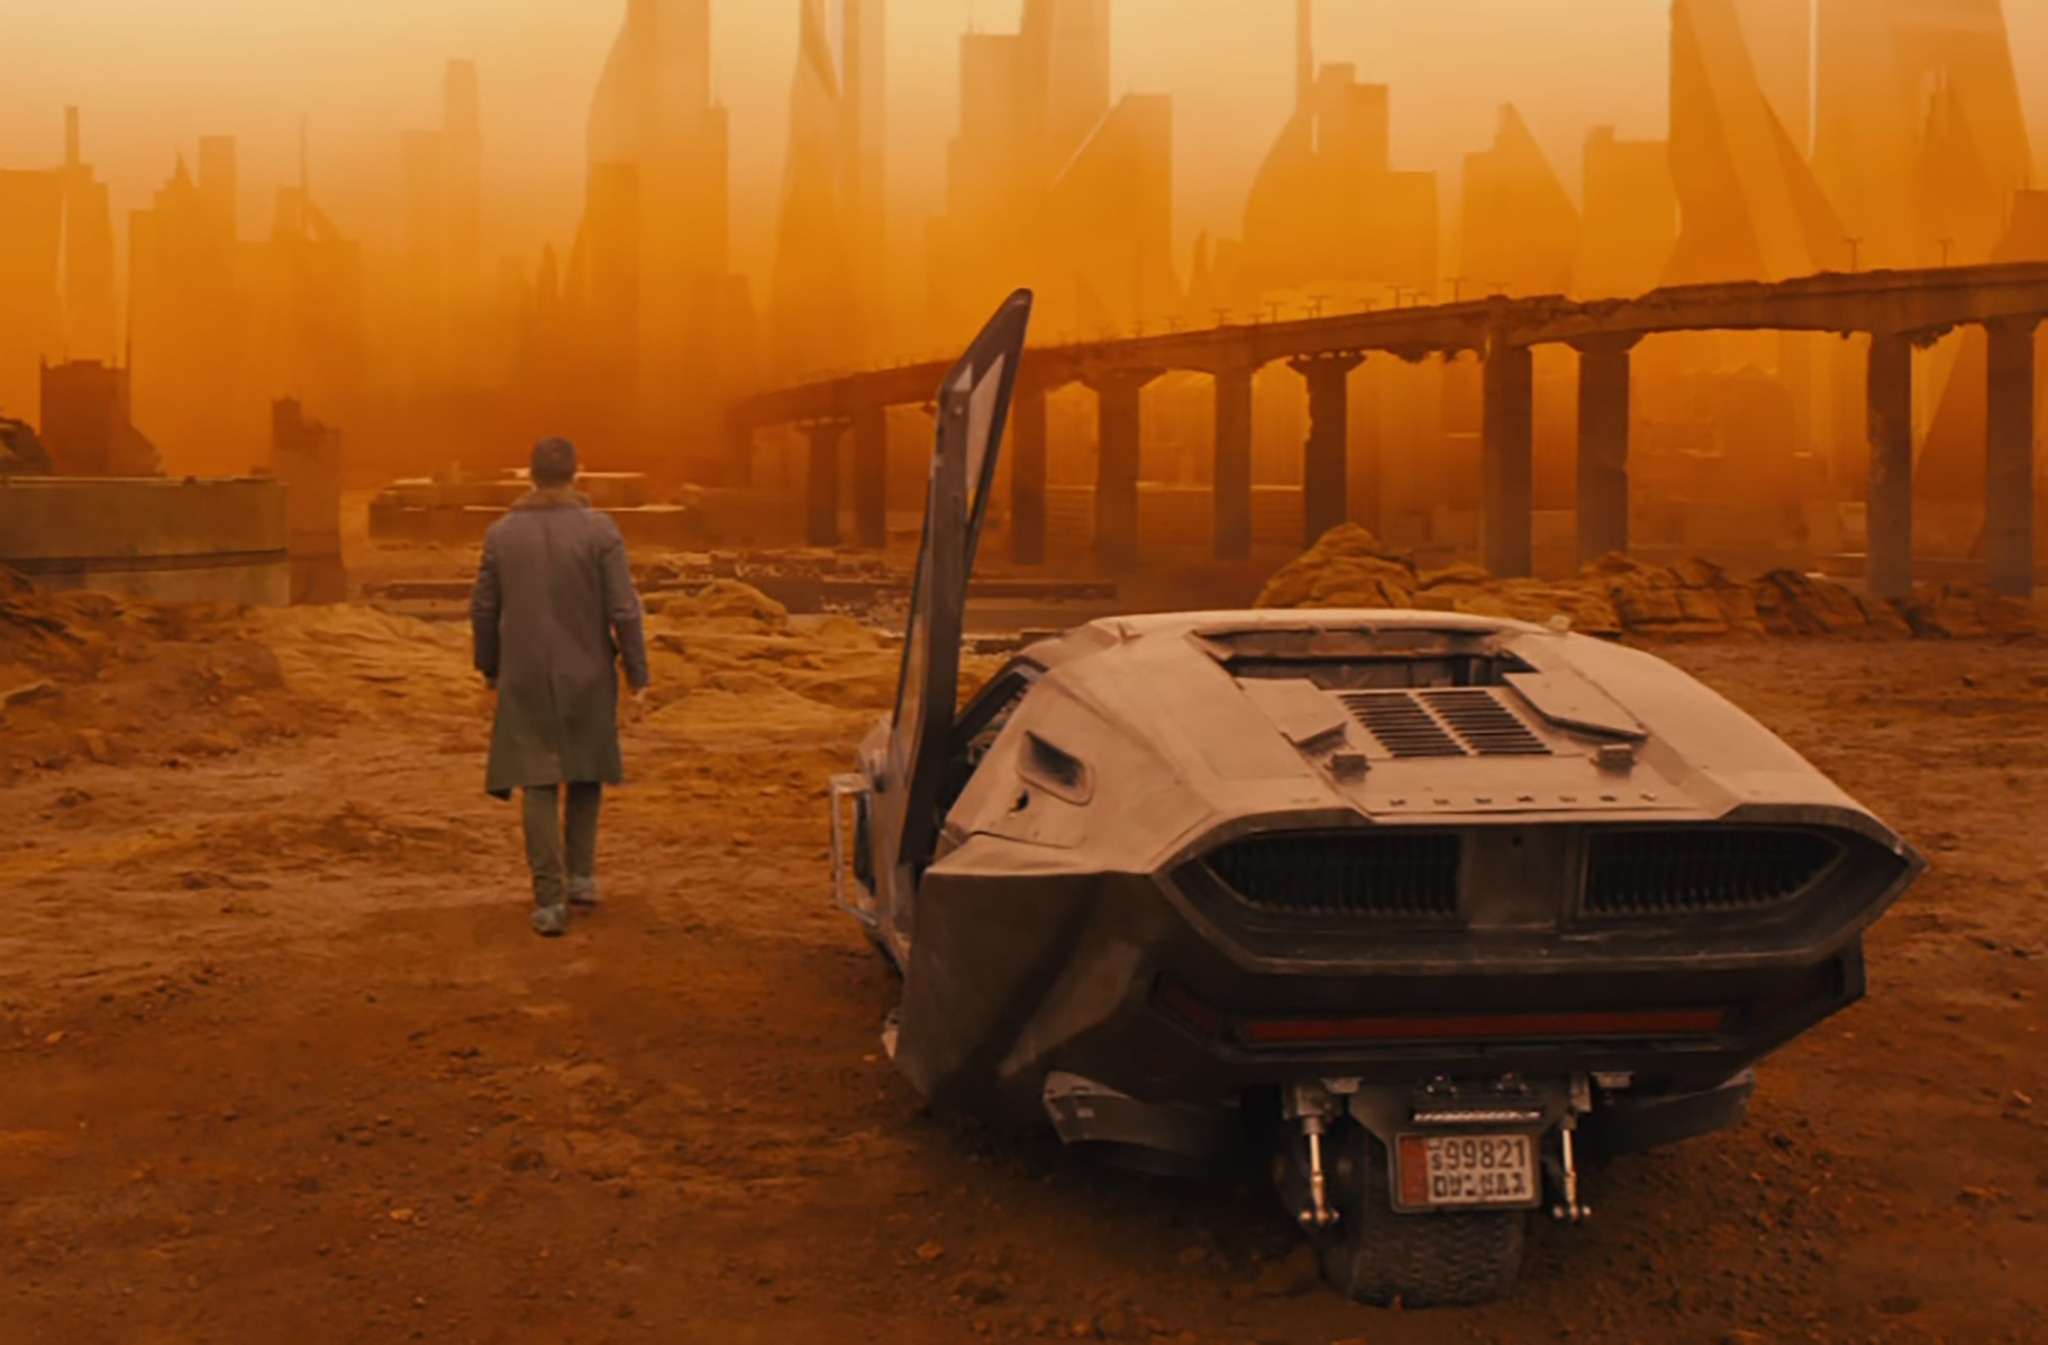 Police Officer Wallpaper Hd The Cool Cars Of Quot Blade Runner 2049 Quot Automobile Magazine